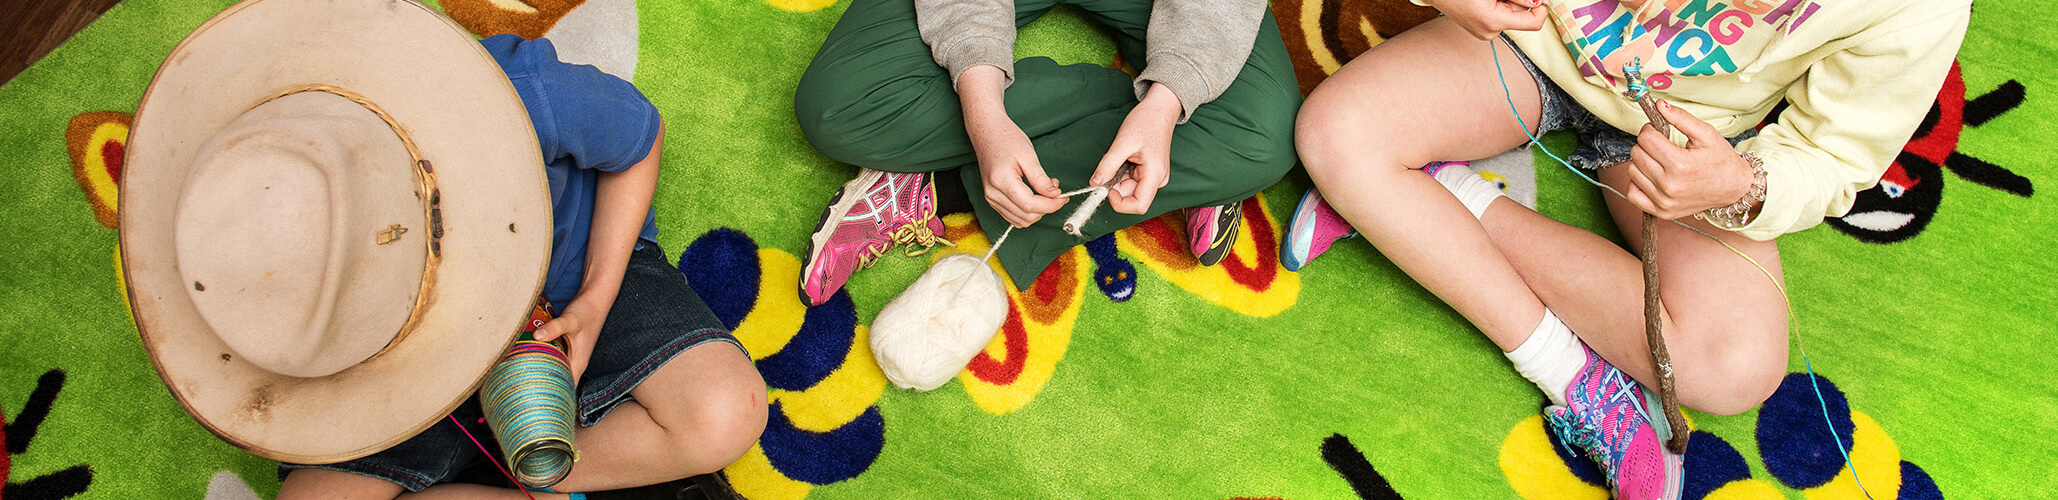 A cropped image of three children sitting on a colorful mat playing with balls of wool wrapping it around objects. The image is presented from directly above the children.